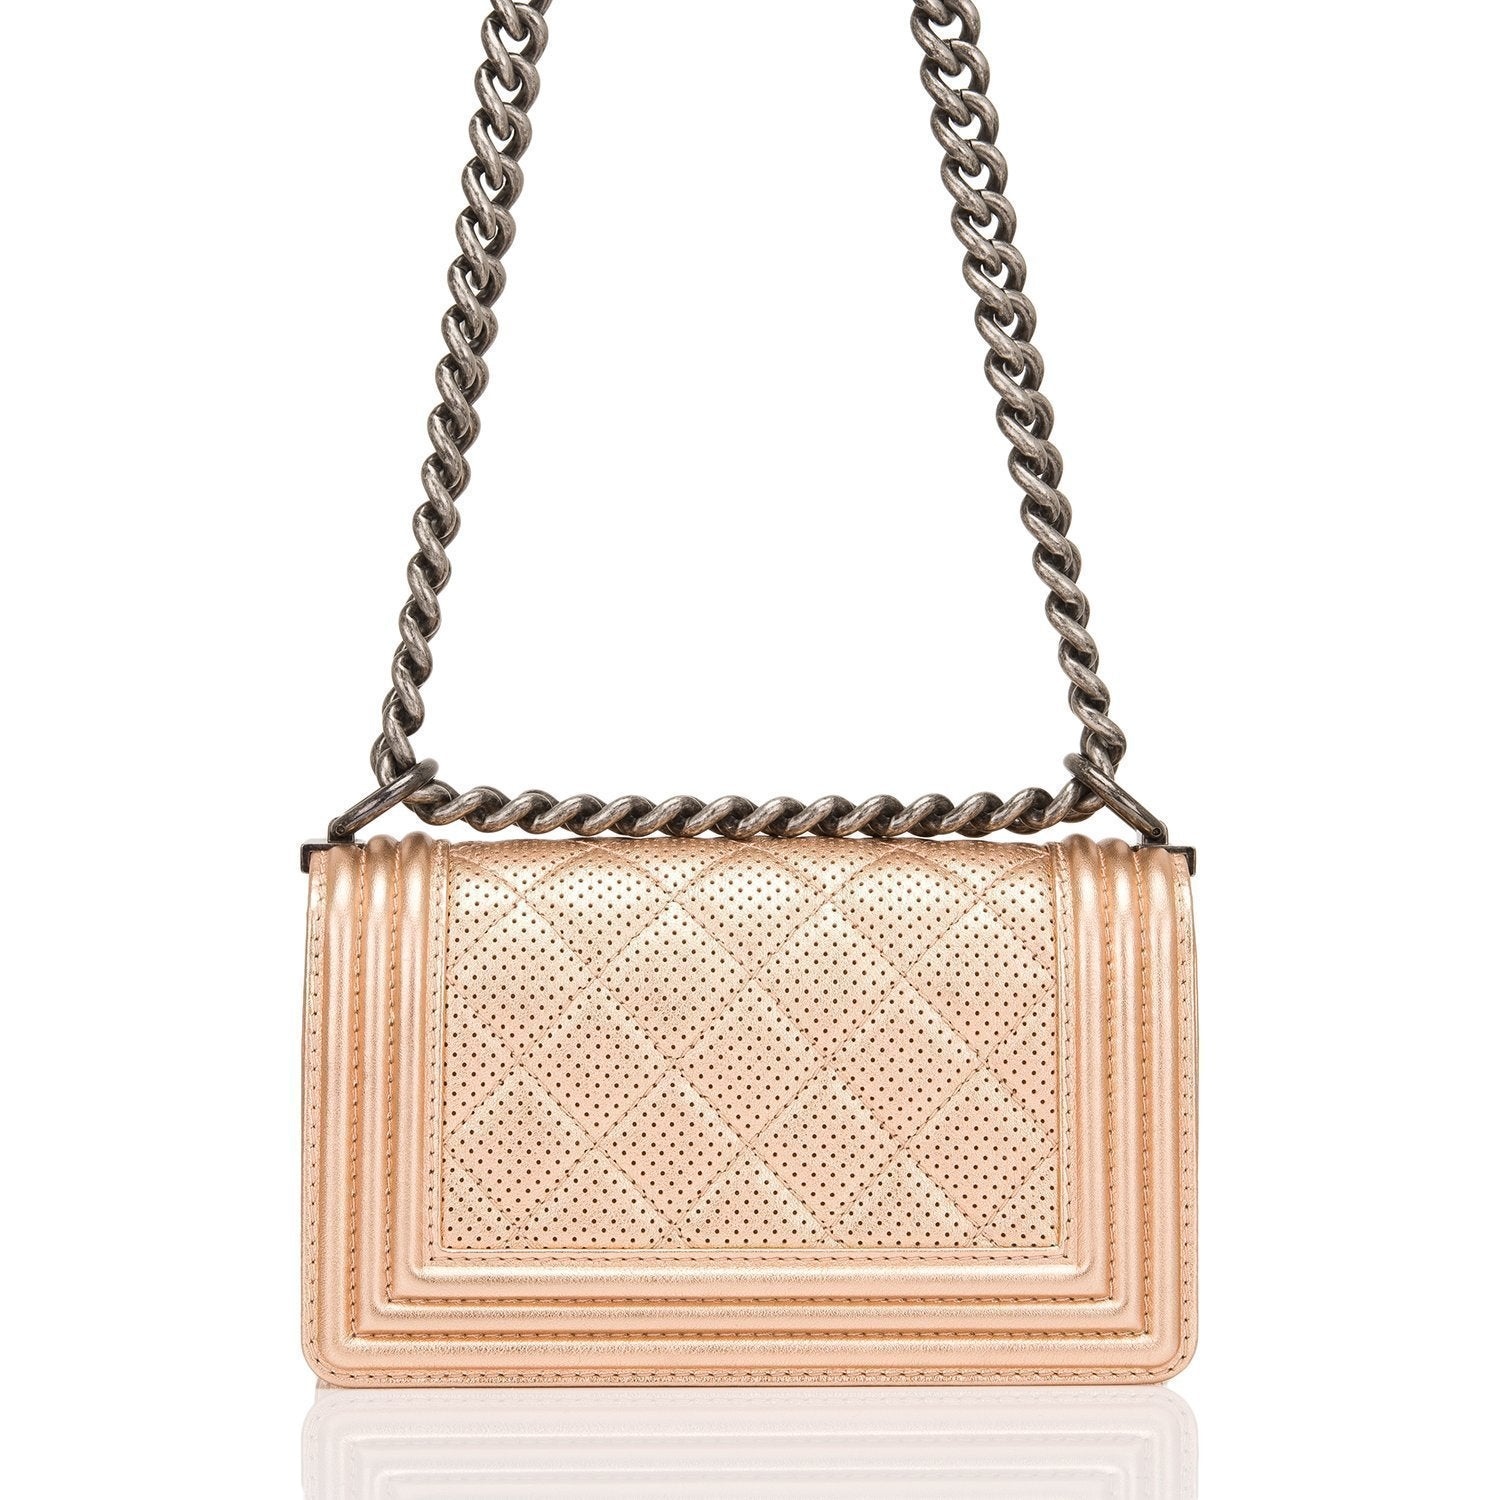 Chanel Rose Gold Metallic Perforated Calfskin Small Boy Bag Handbags